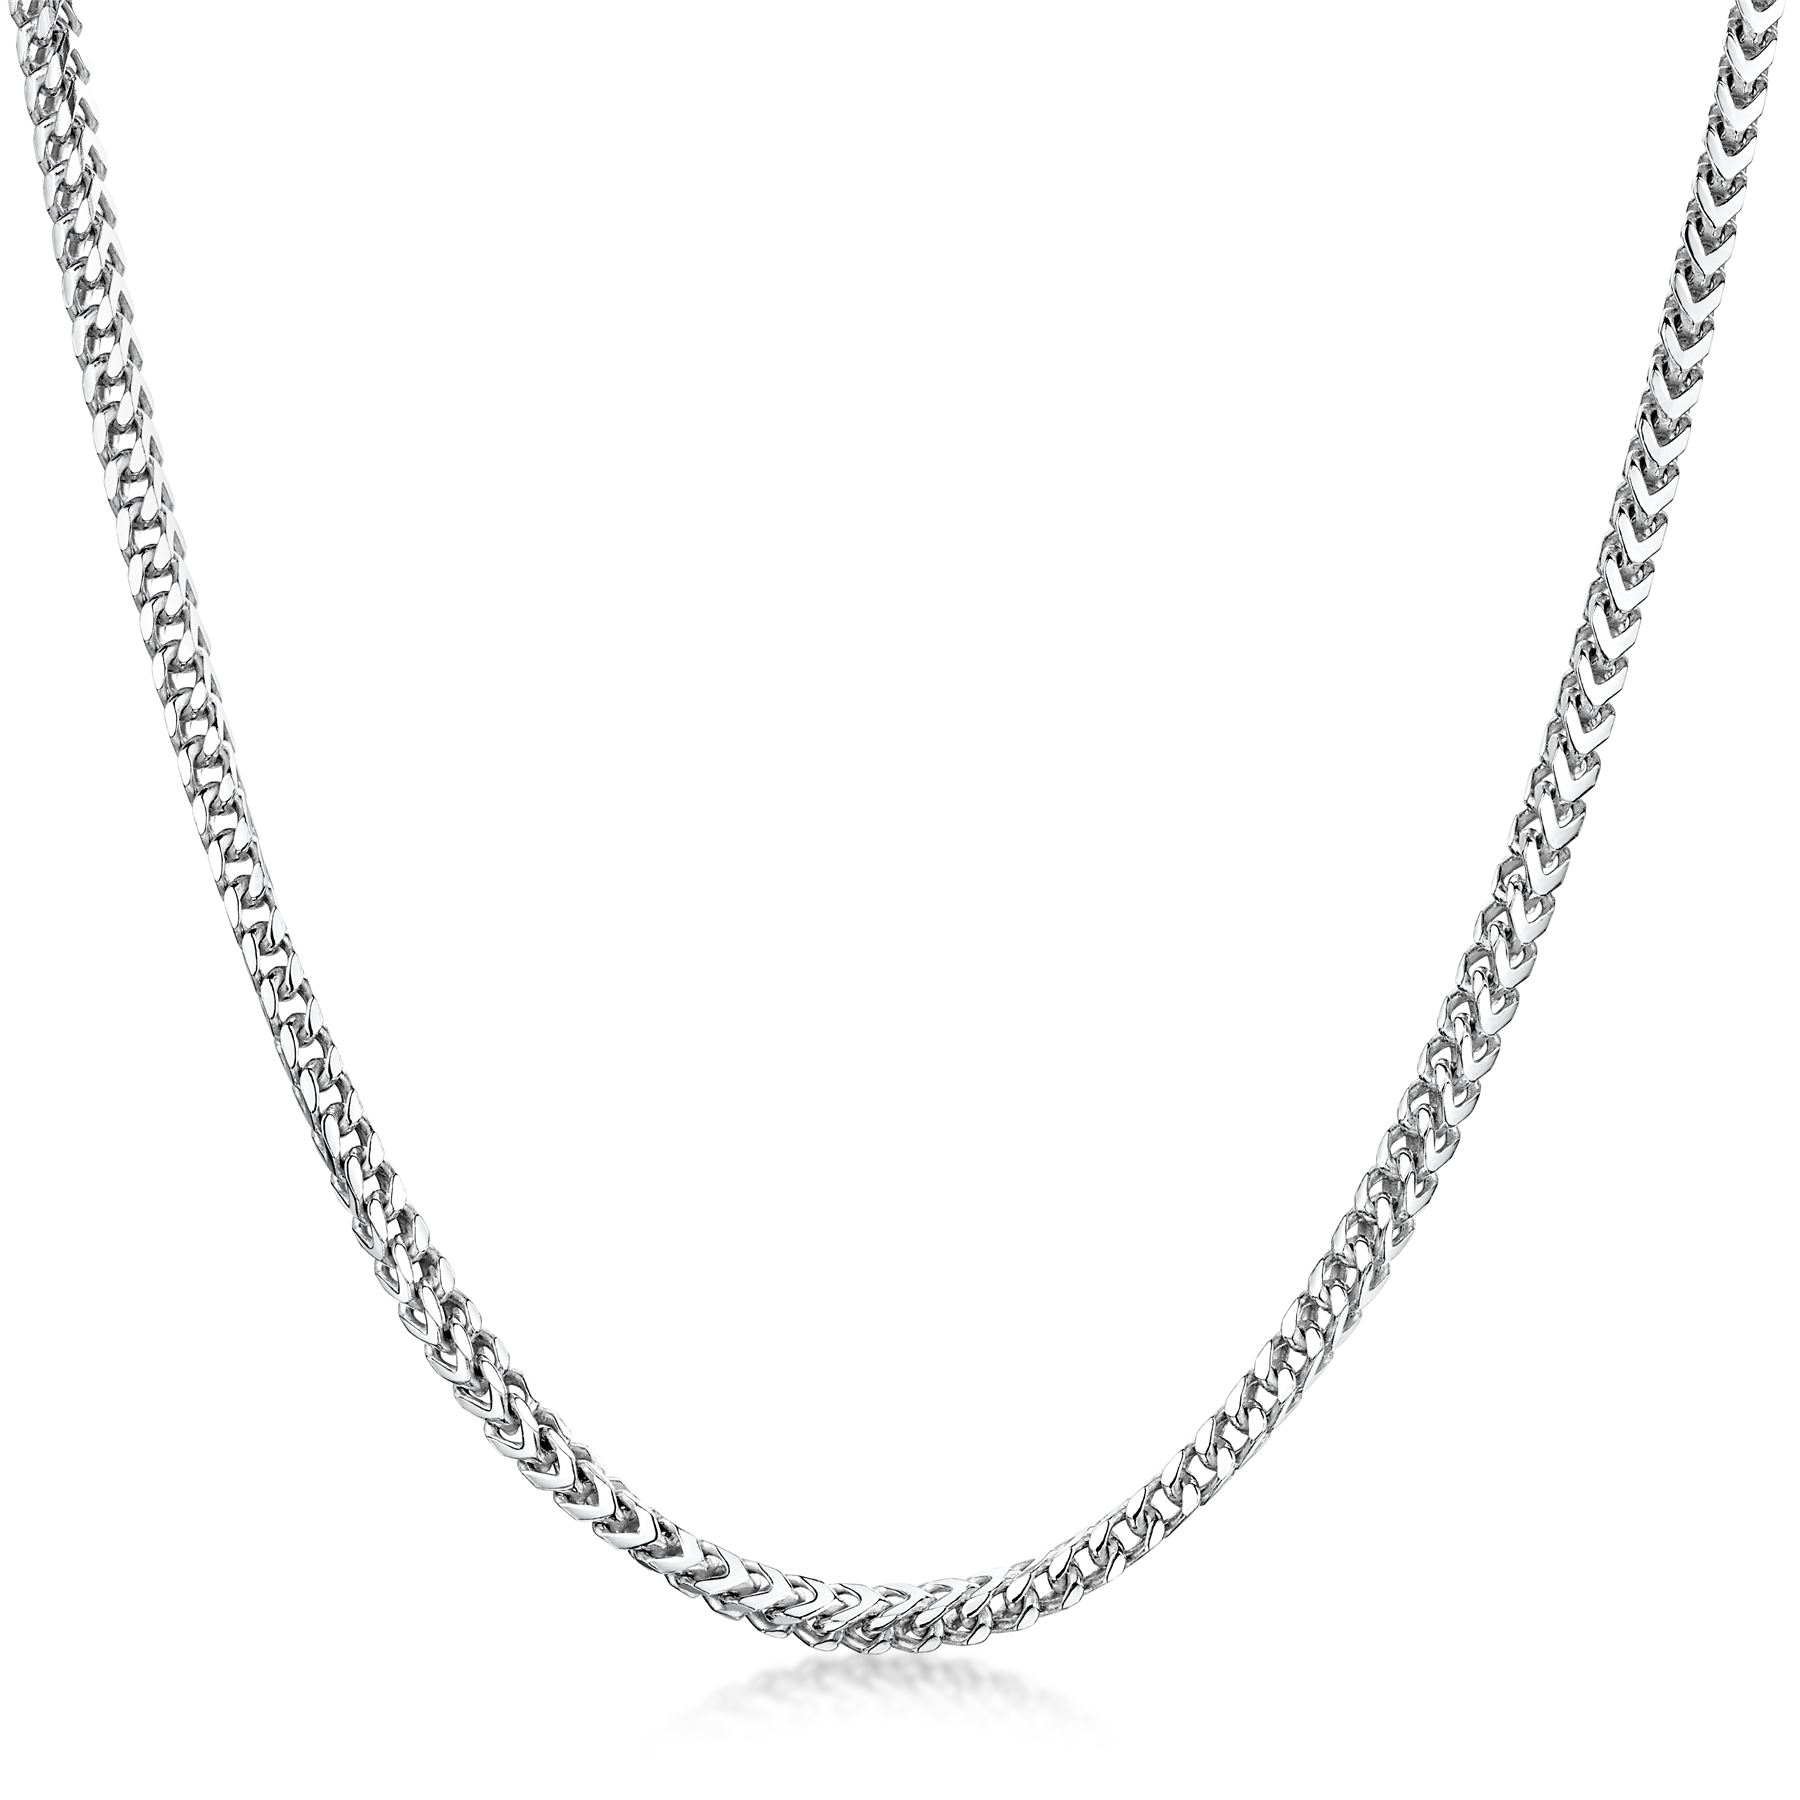 Amberta-925-Sterling-Silver-Link-Chain-Mens-Curb-Cuban-Necklace-ALL-SIZES-Italy thumbnail 8